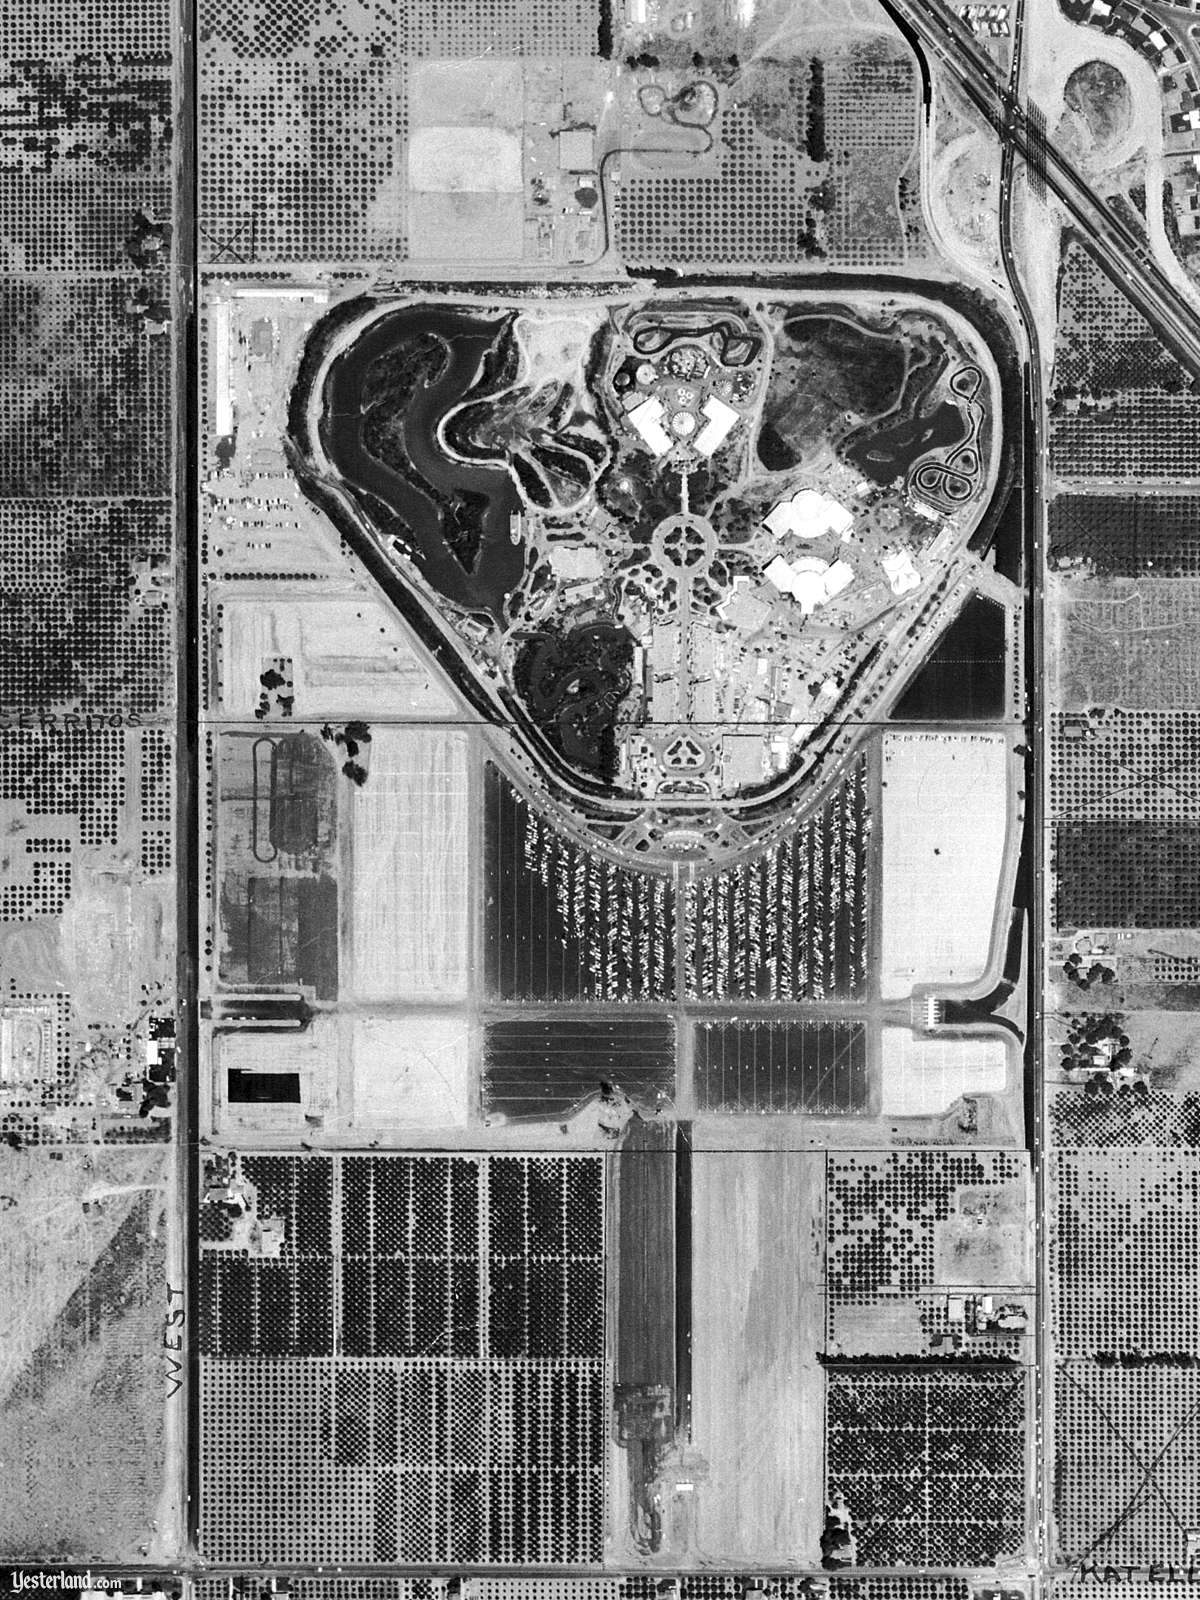 Disneyland from Above on July 15, 1955 (1200 x 1600)